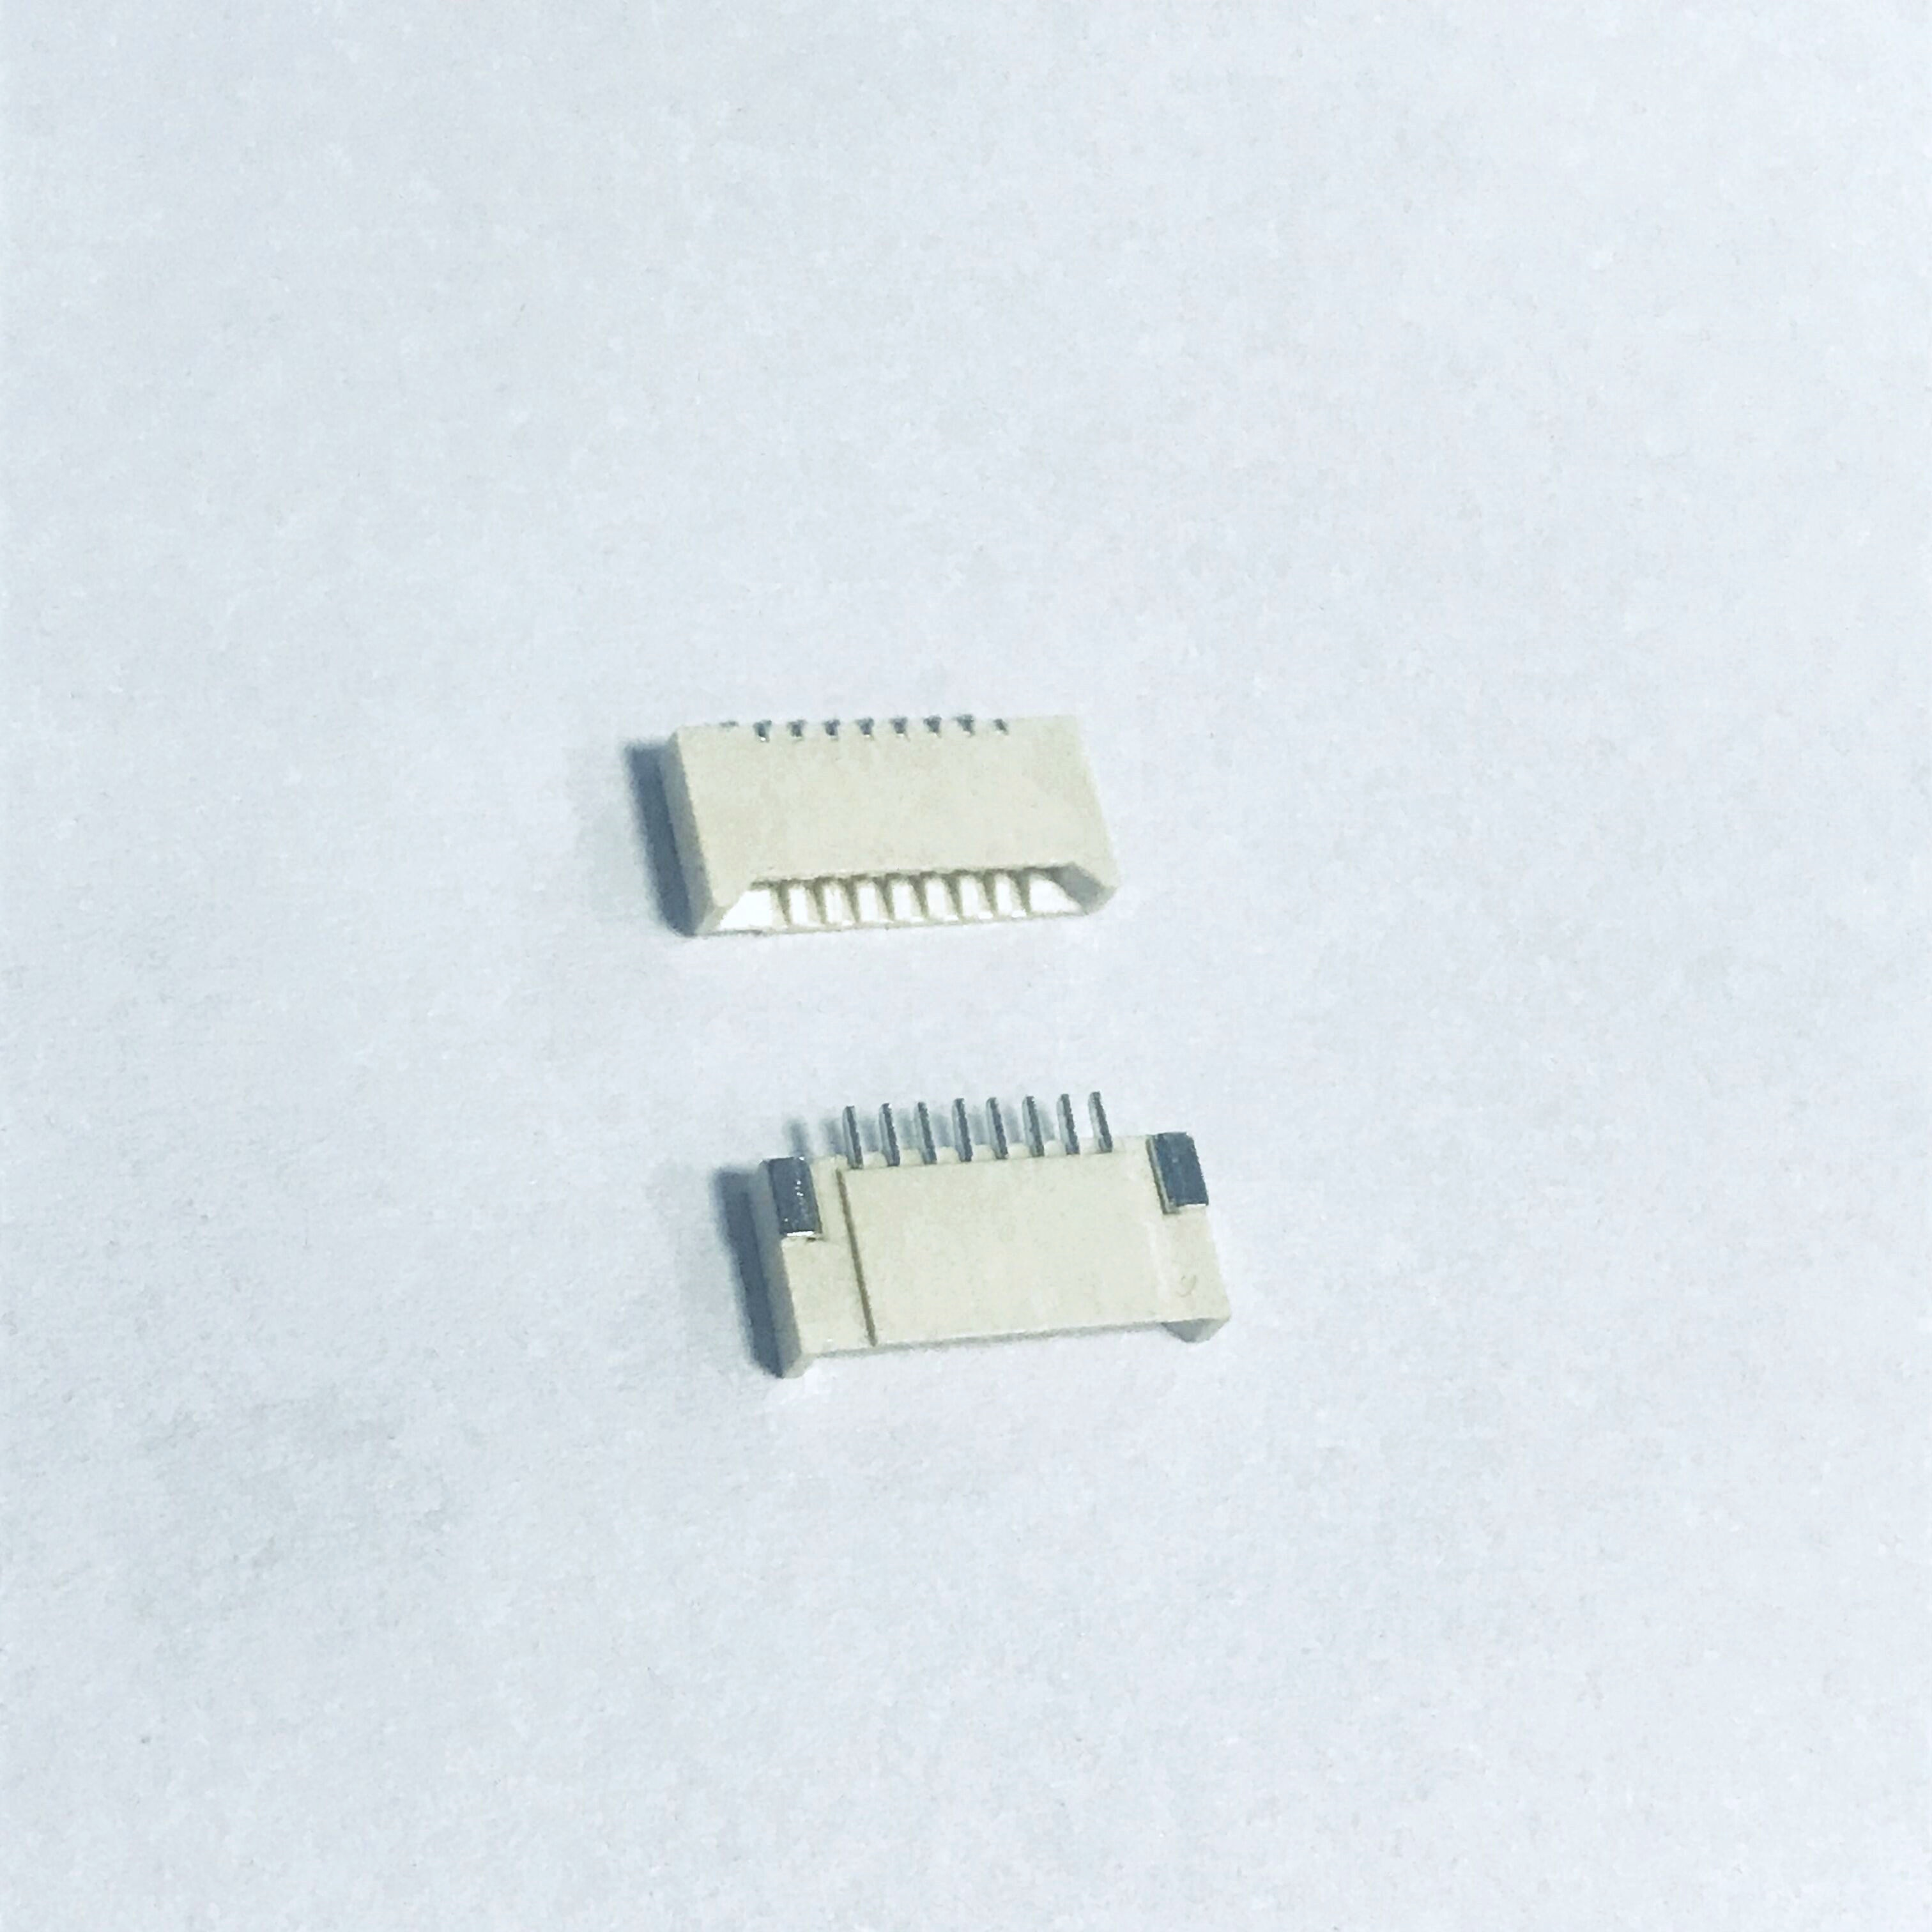 FPC 1.0mm pitch 8 contact positions dual contact, Gold Tin Plating